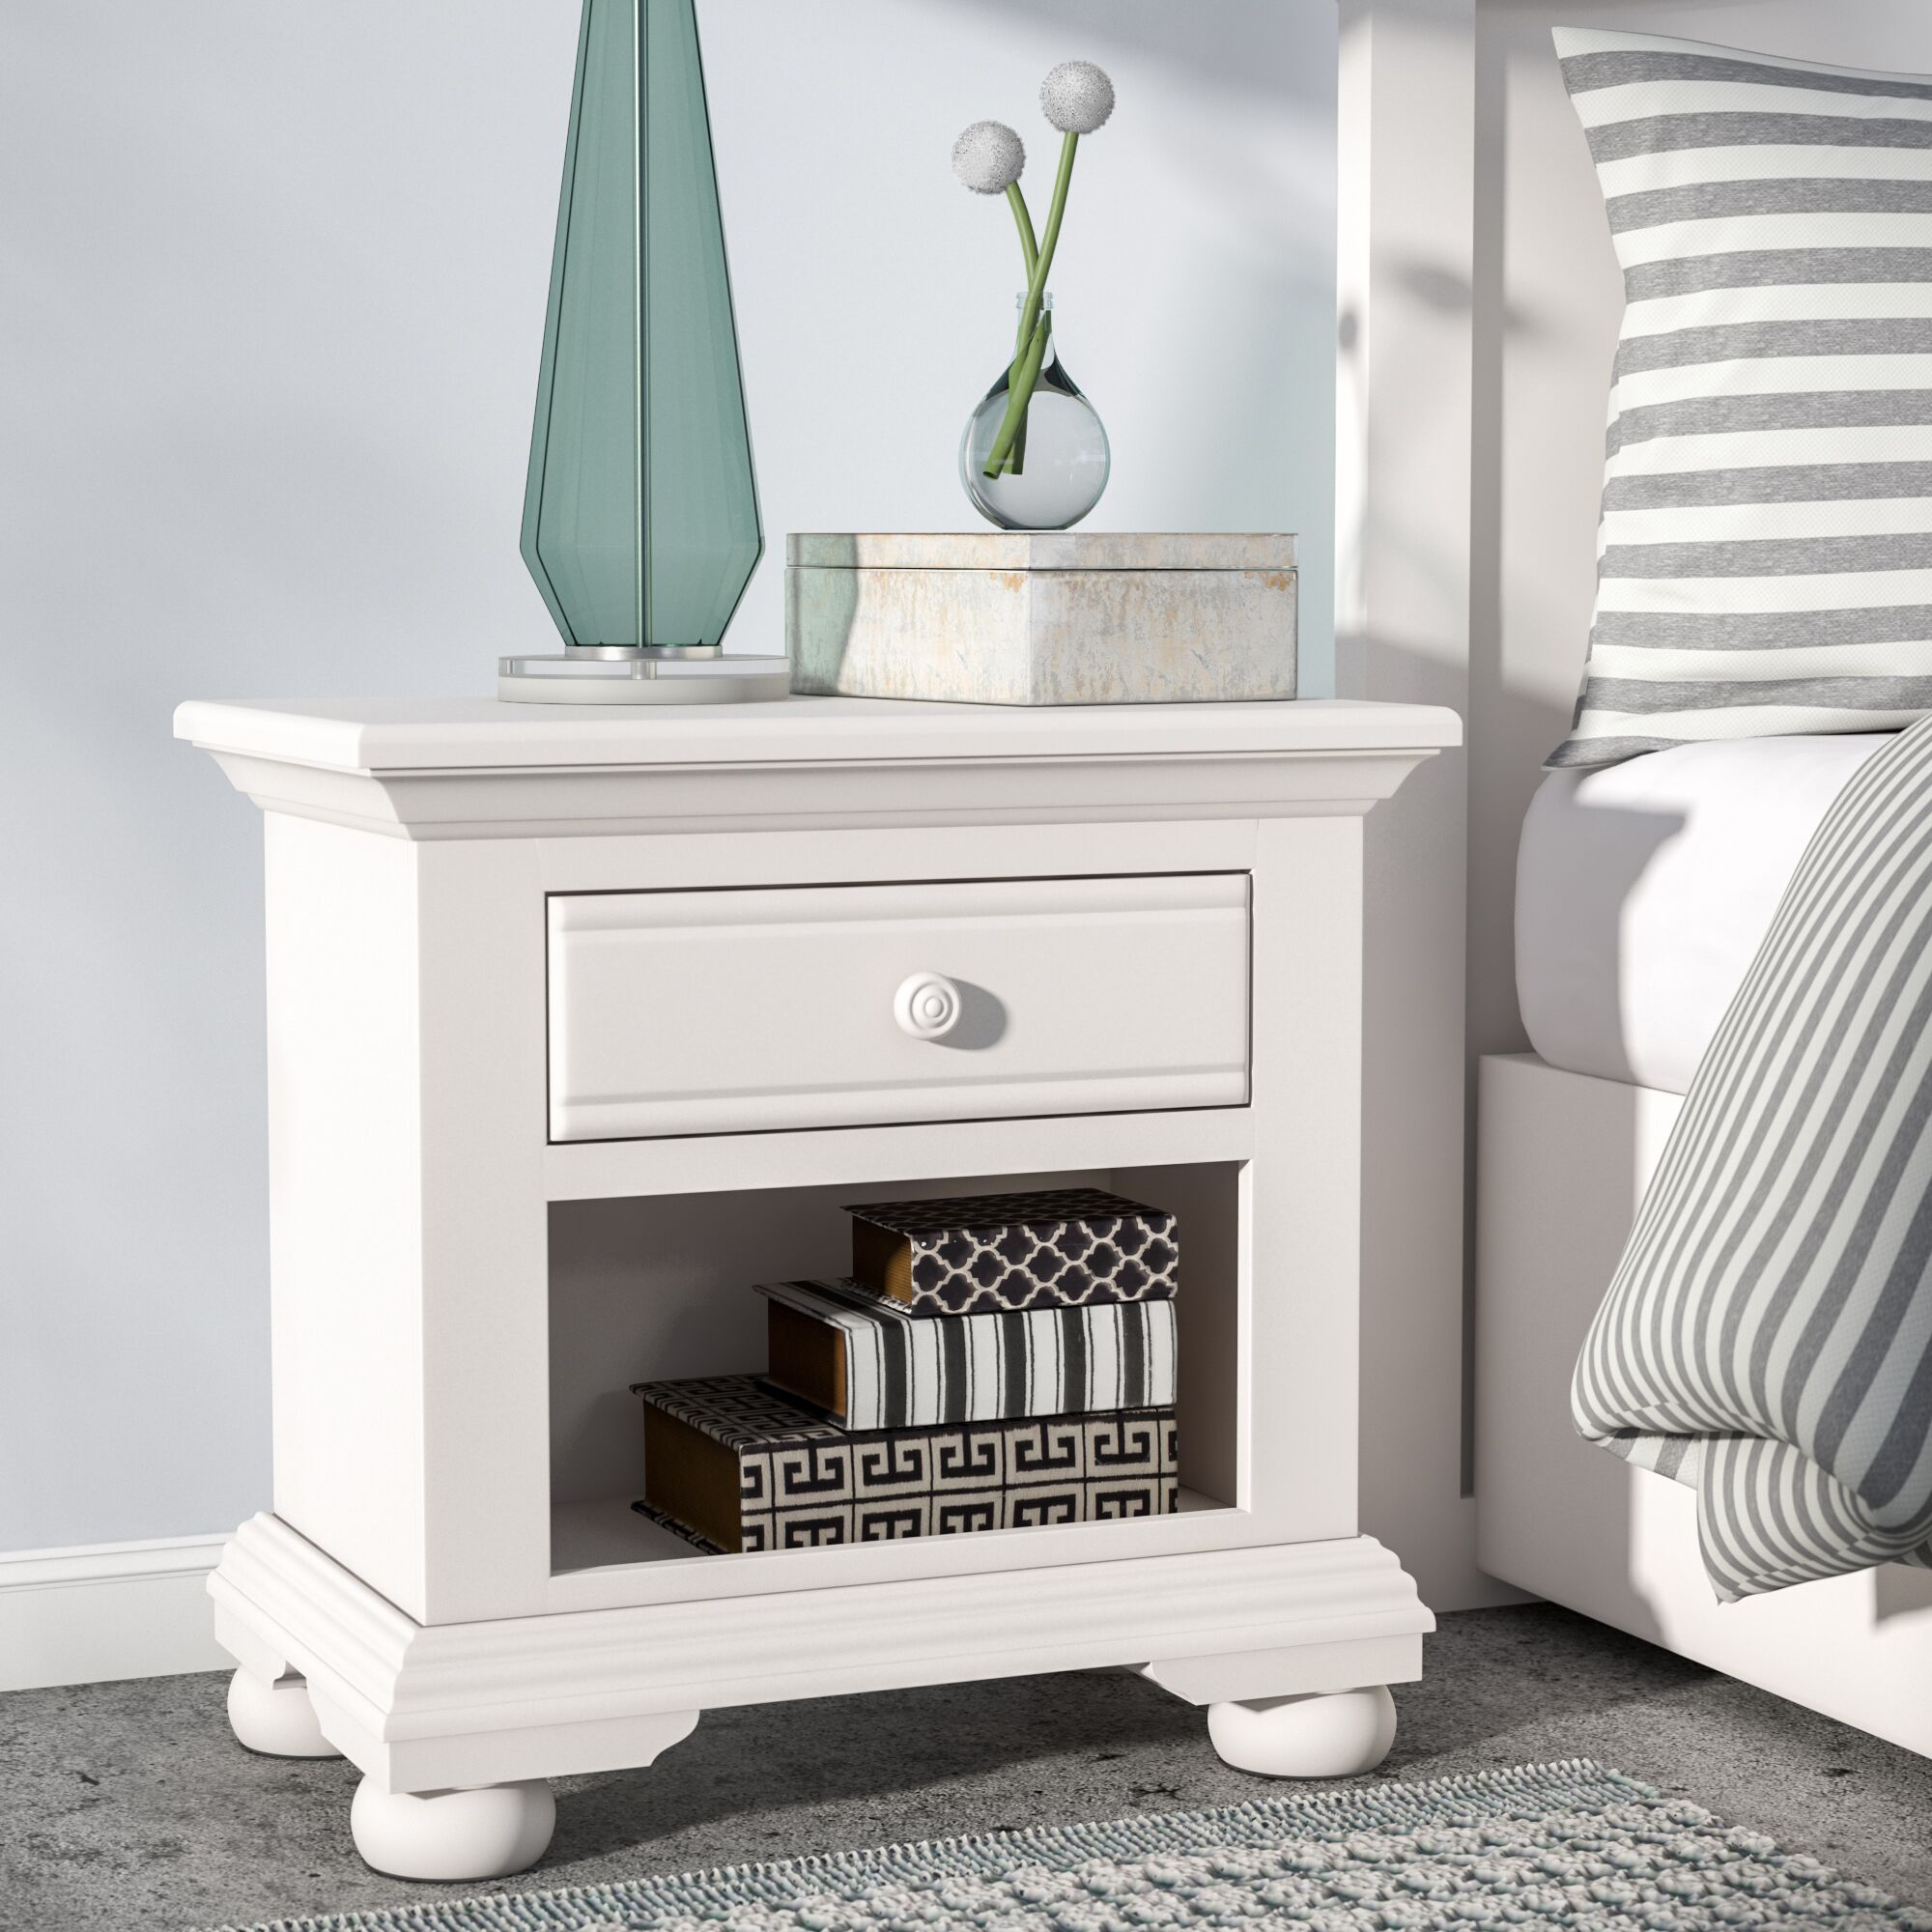 Montcerf 1 Drawer Nightstand Color: Distressed Eggshell White